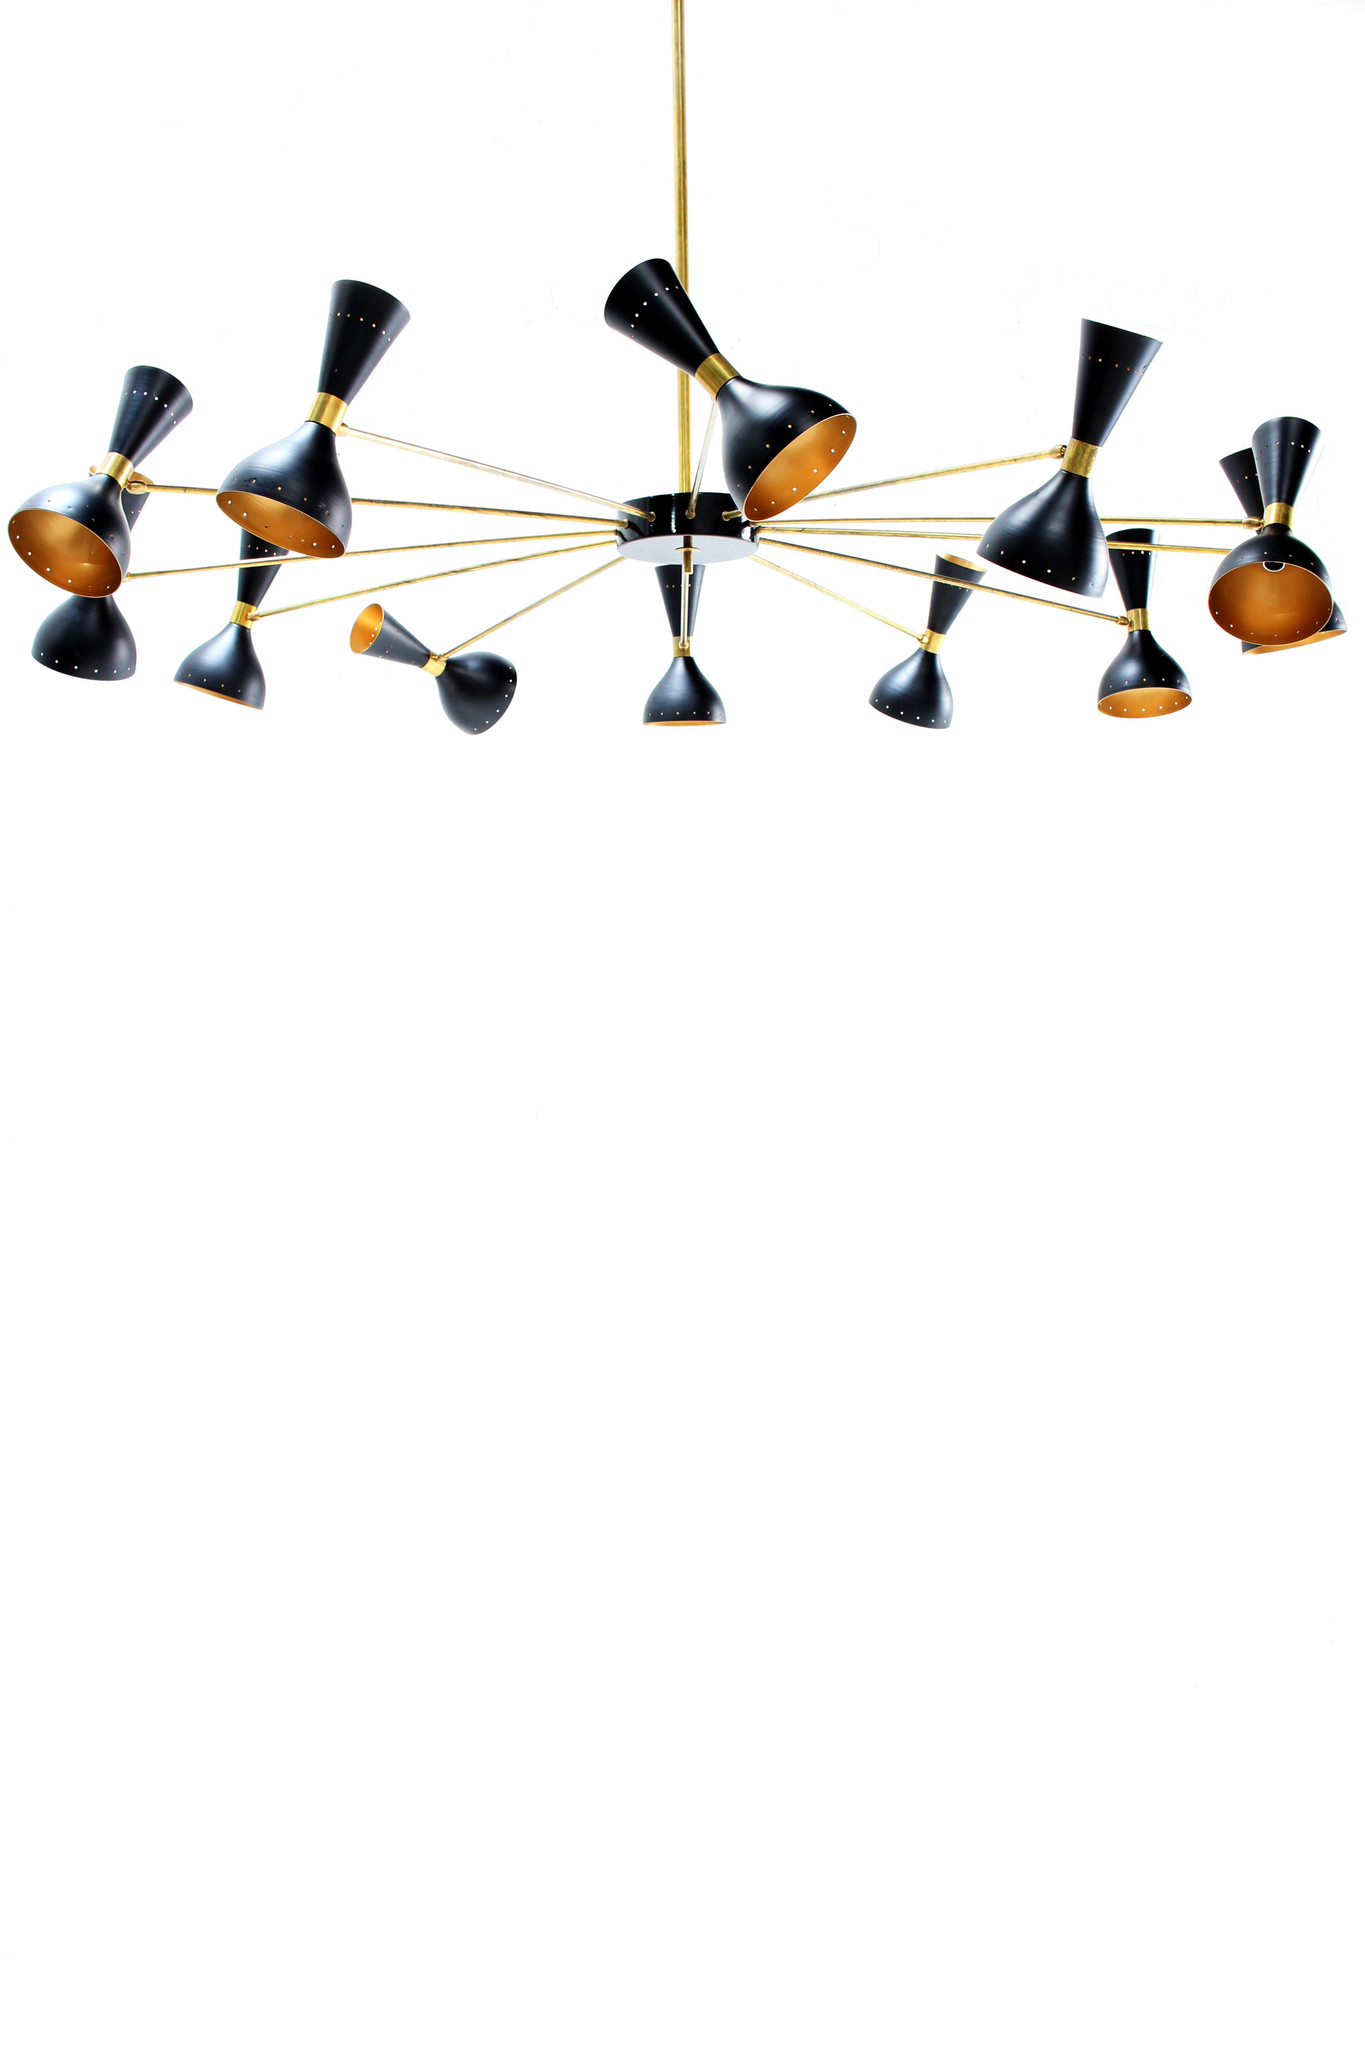 Large Italian chandelier in the style of stilnovo